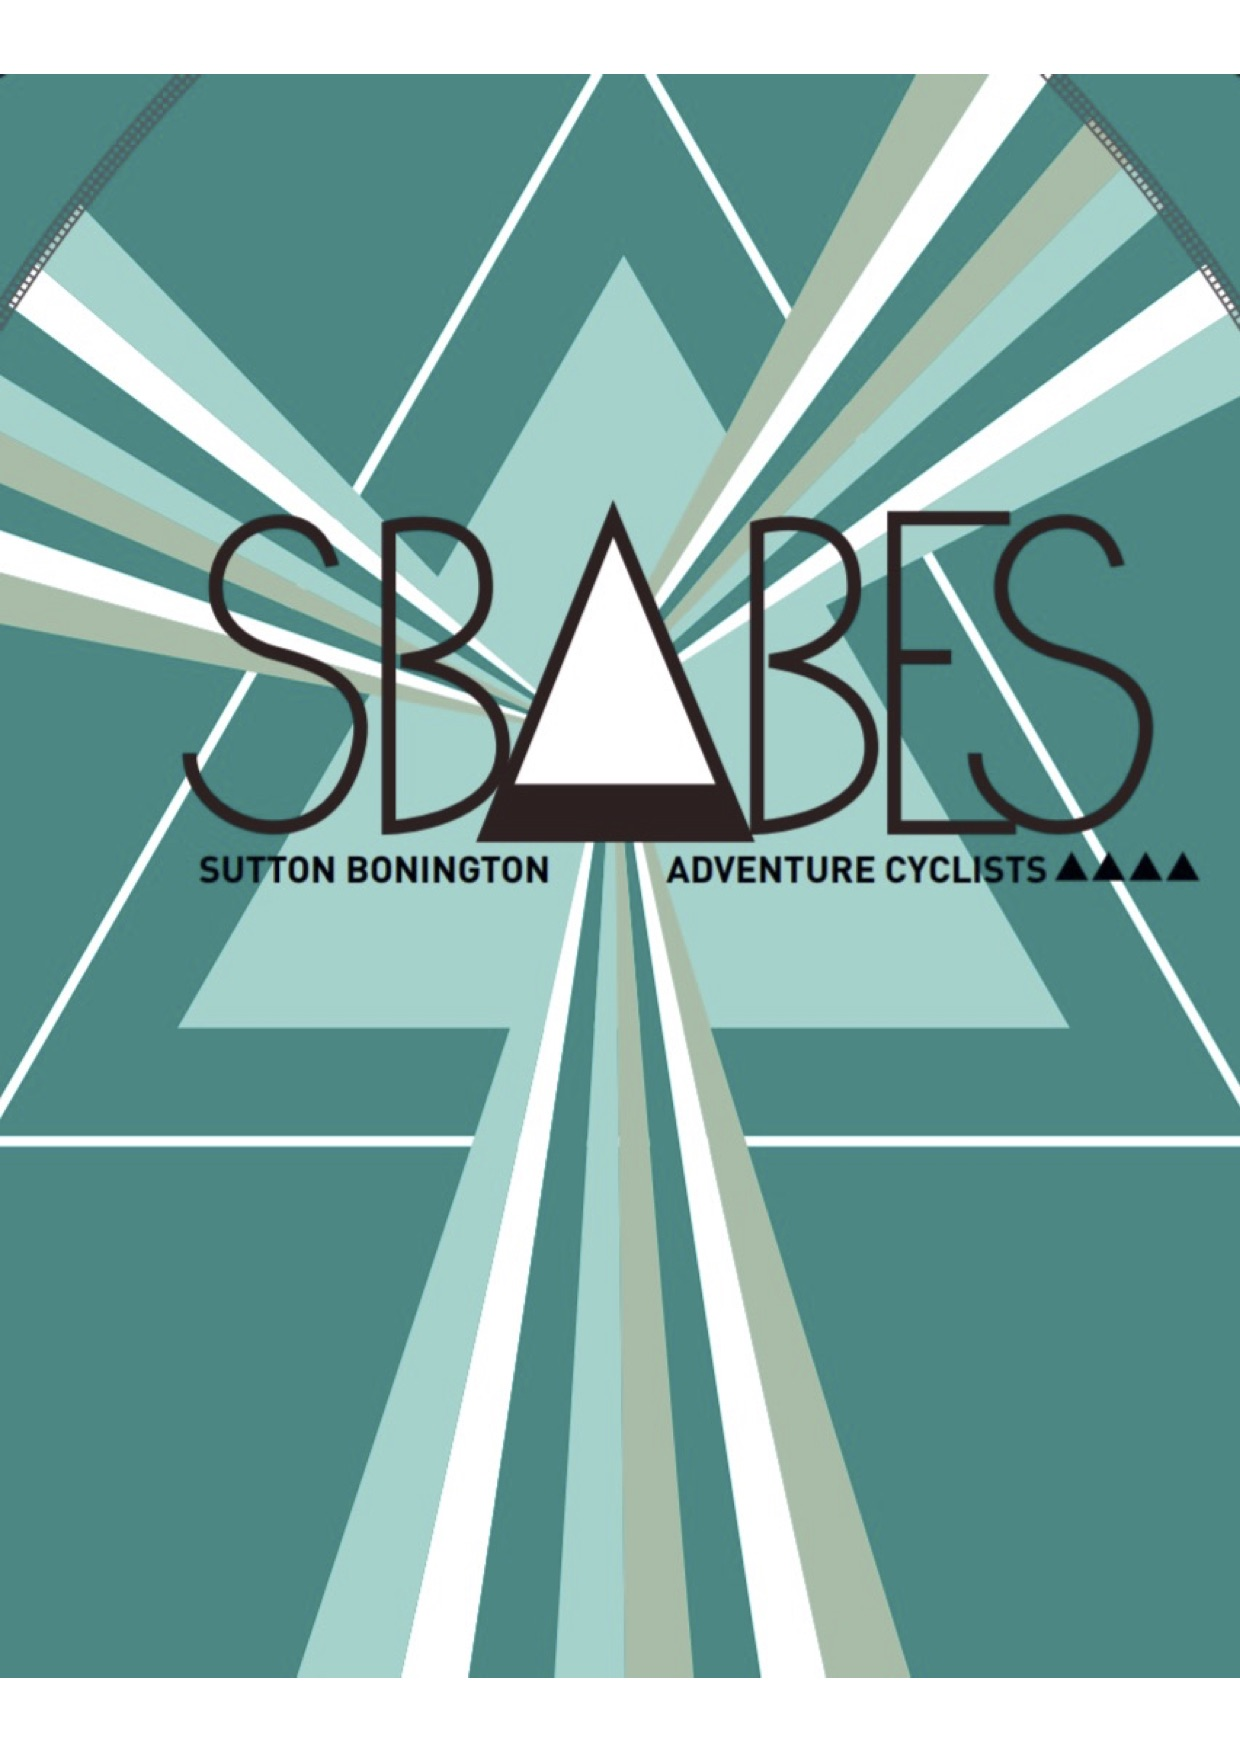 Adventure Biking Enthusiasts (SBABES) thumbnail